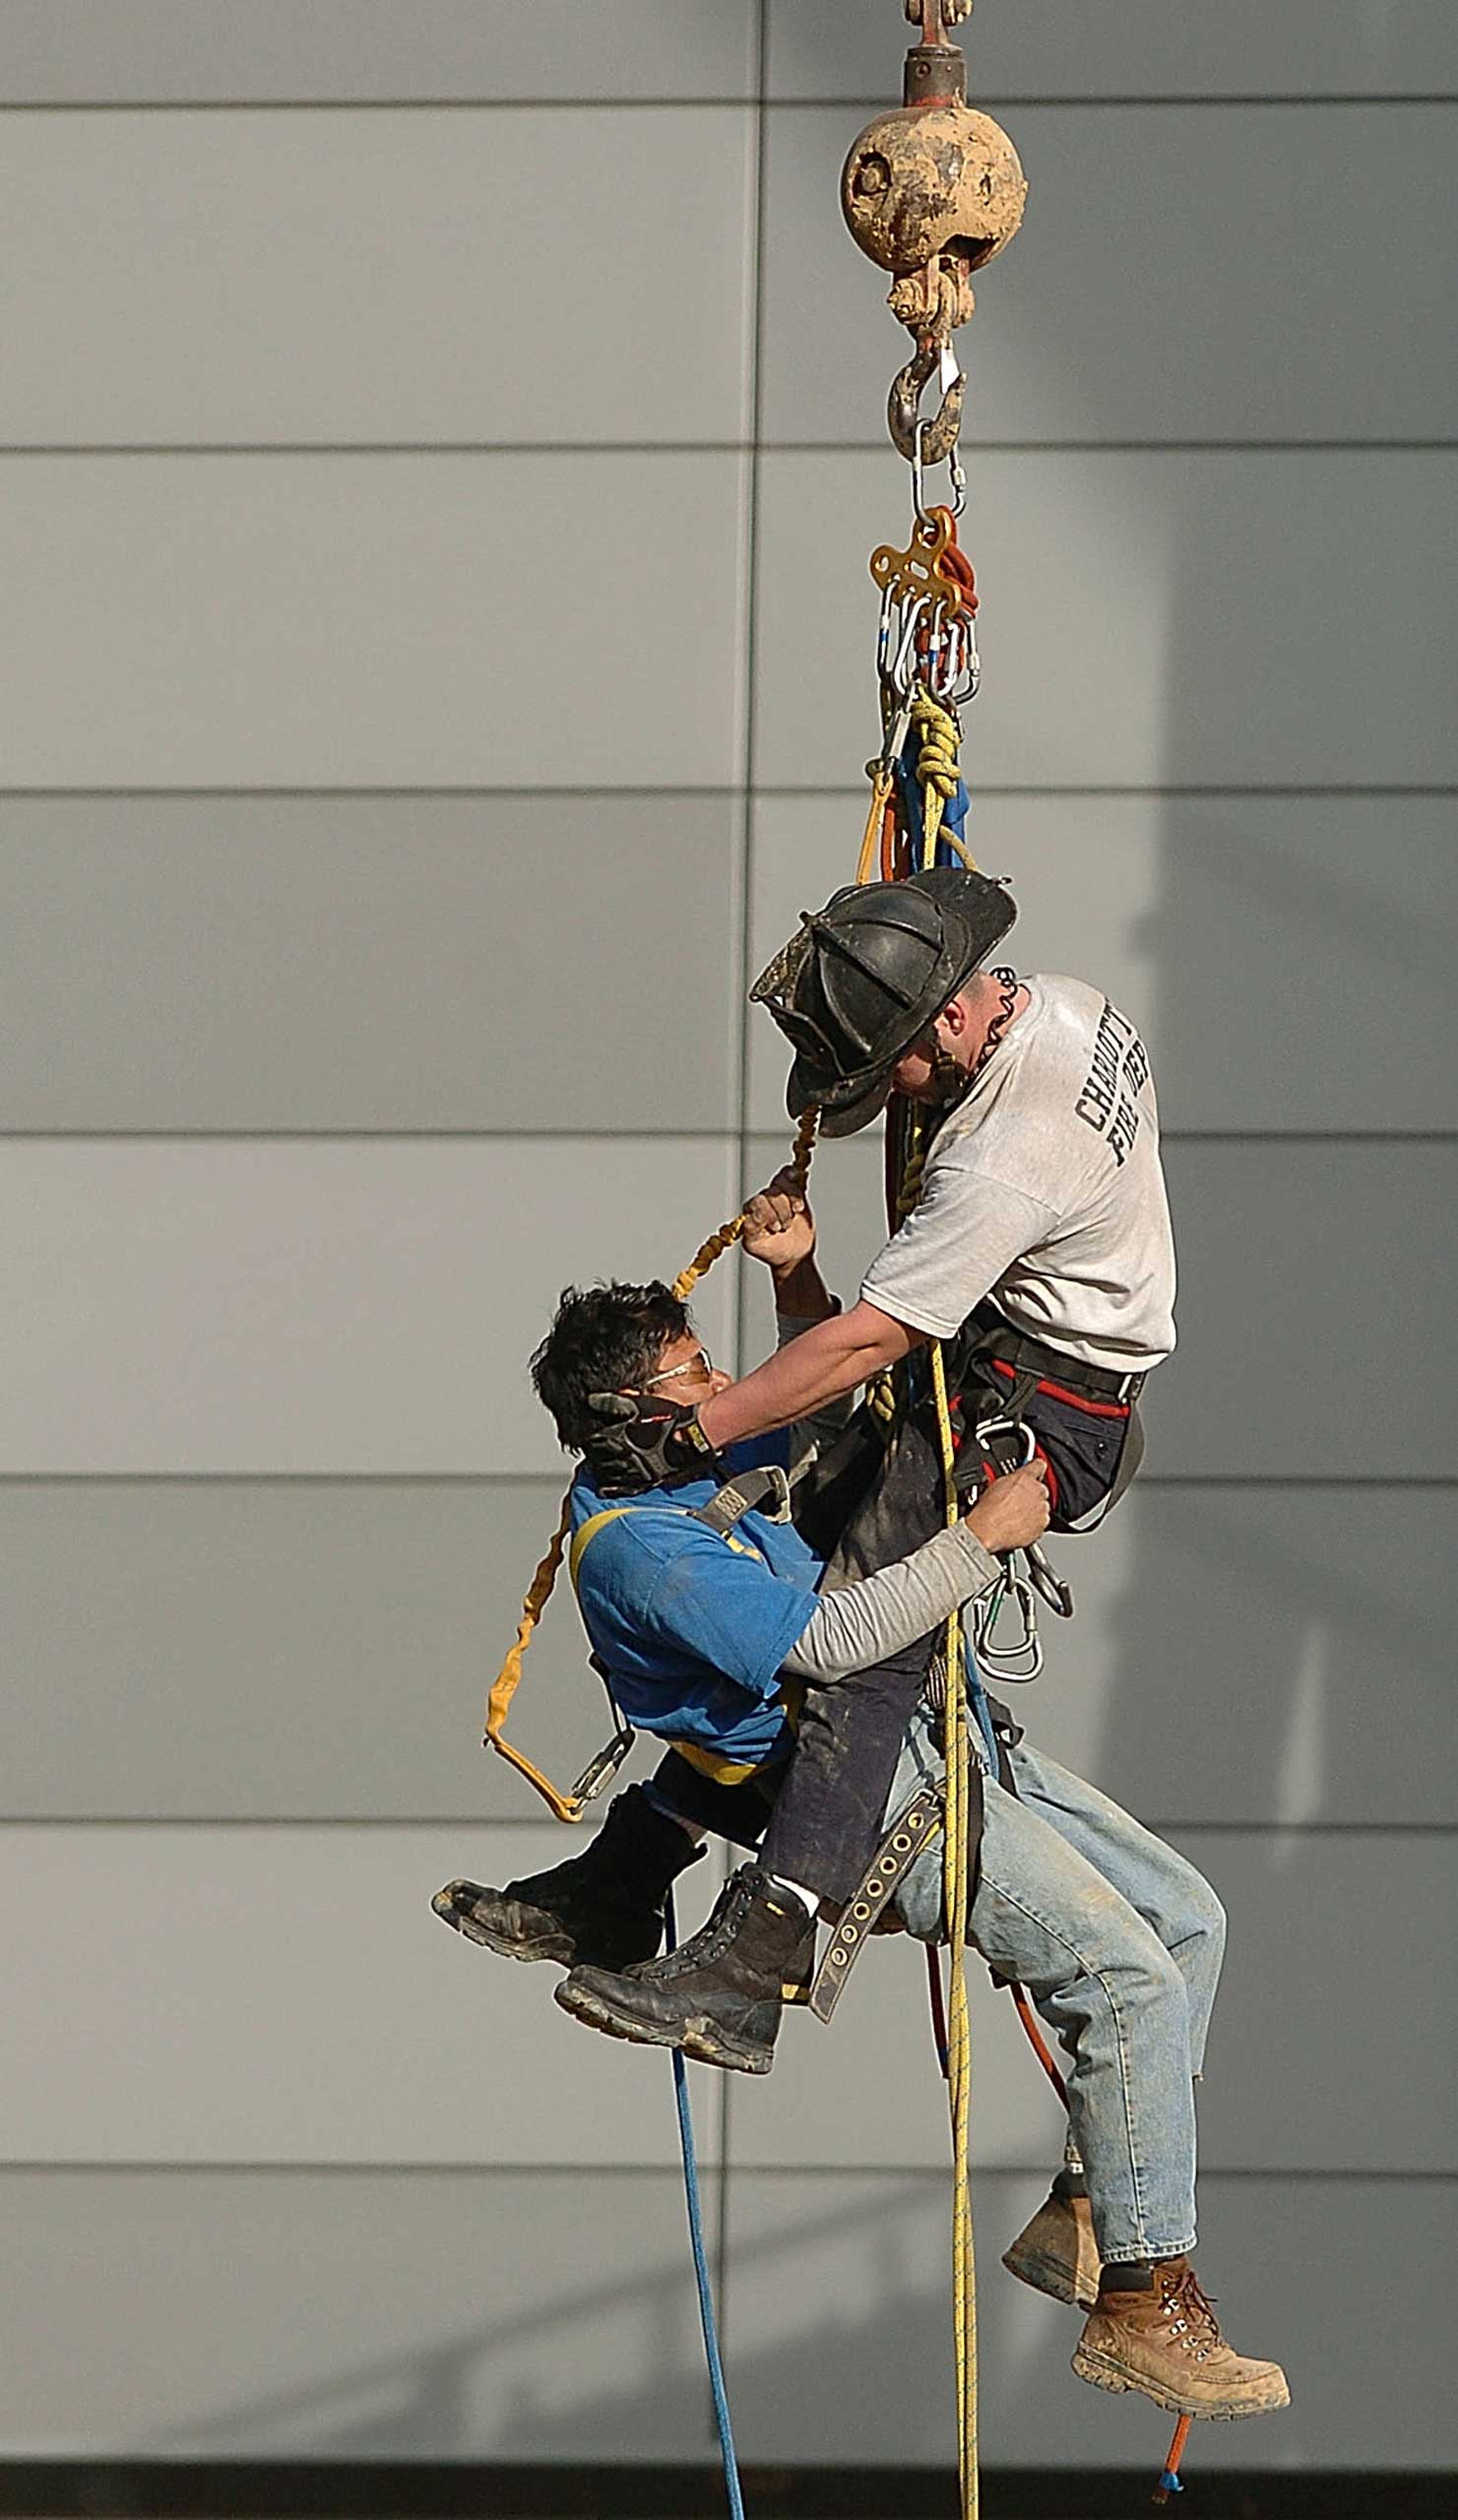 Firefighter Billy Mitchell rescues an injured construction worker in Charlotte, N.C., in 2005.